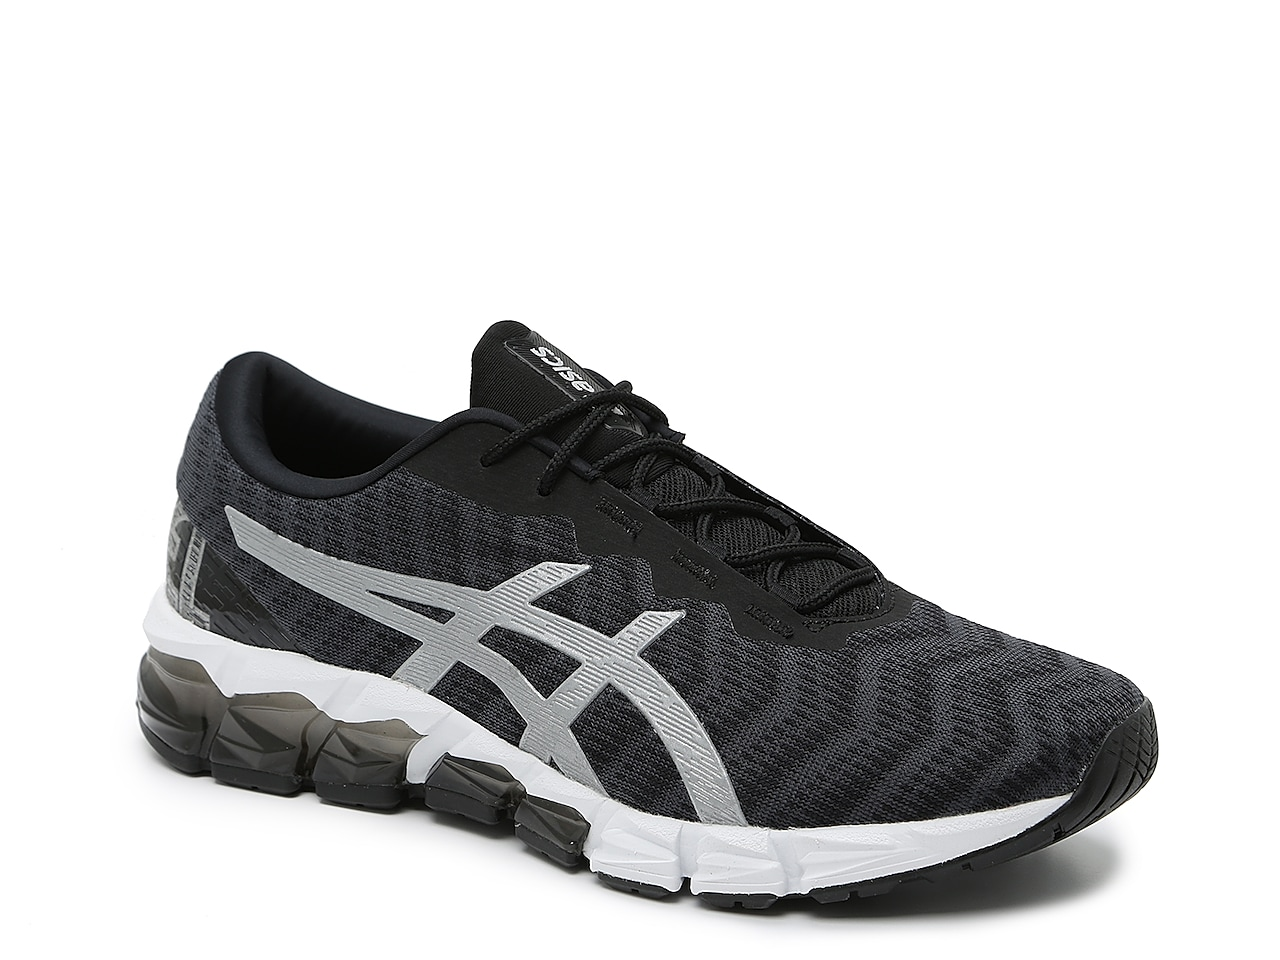 GEL-Quantum 180 5 Running Shoe - Men's